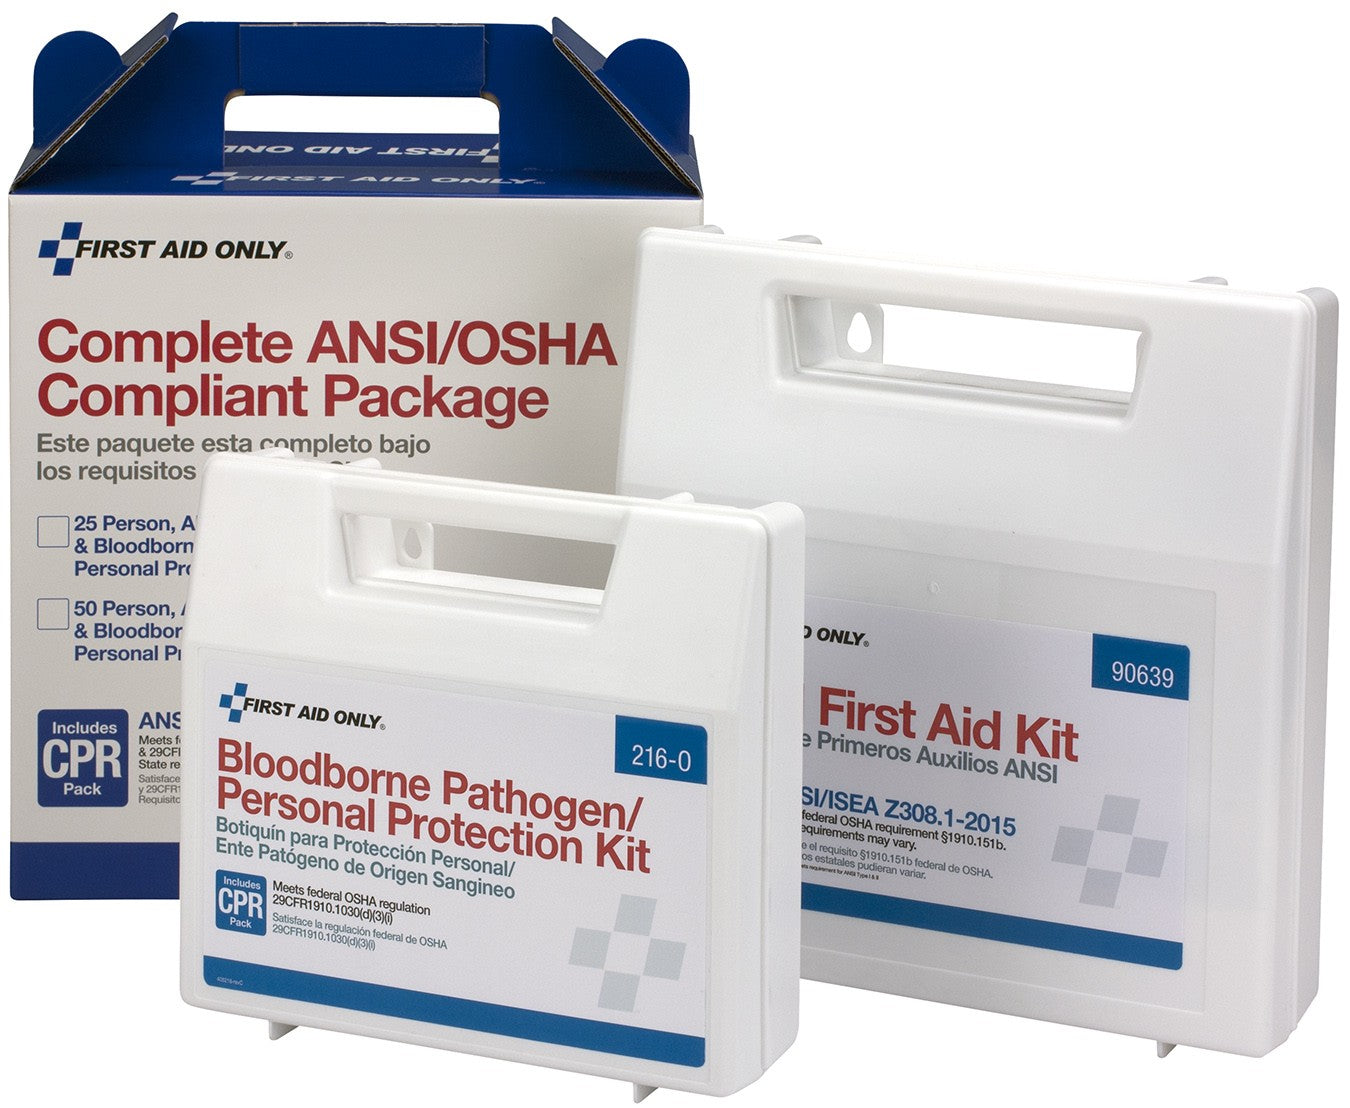 50 Person Complete ANSI/OSHA Compliance Package For First Aid And BBP, Blood Borne Pathogens - BS-FAK-90765-1-FM